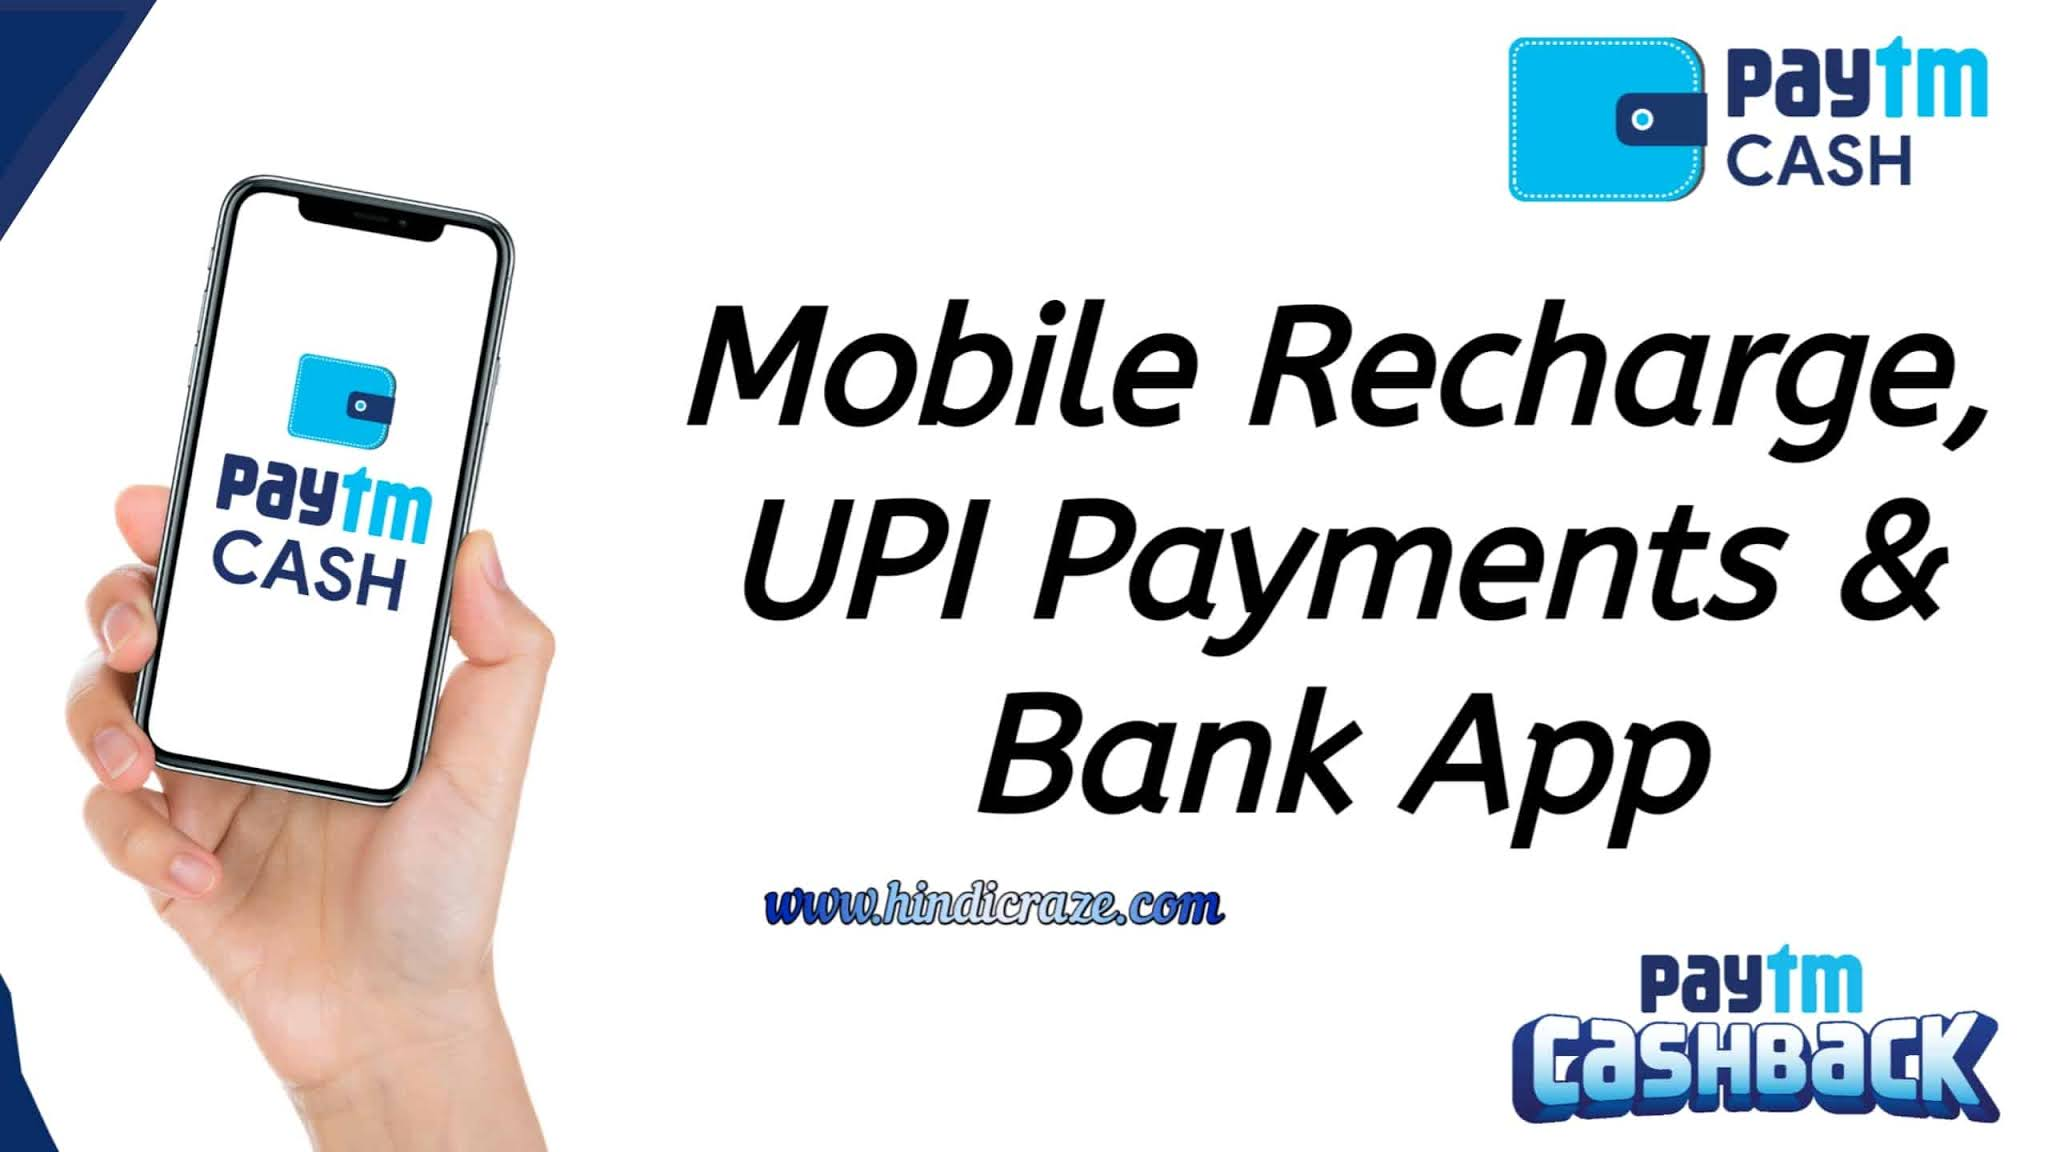 Best UPI Payments App In India 2020 - Paytm